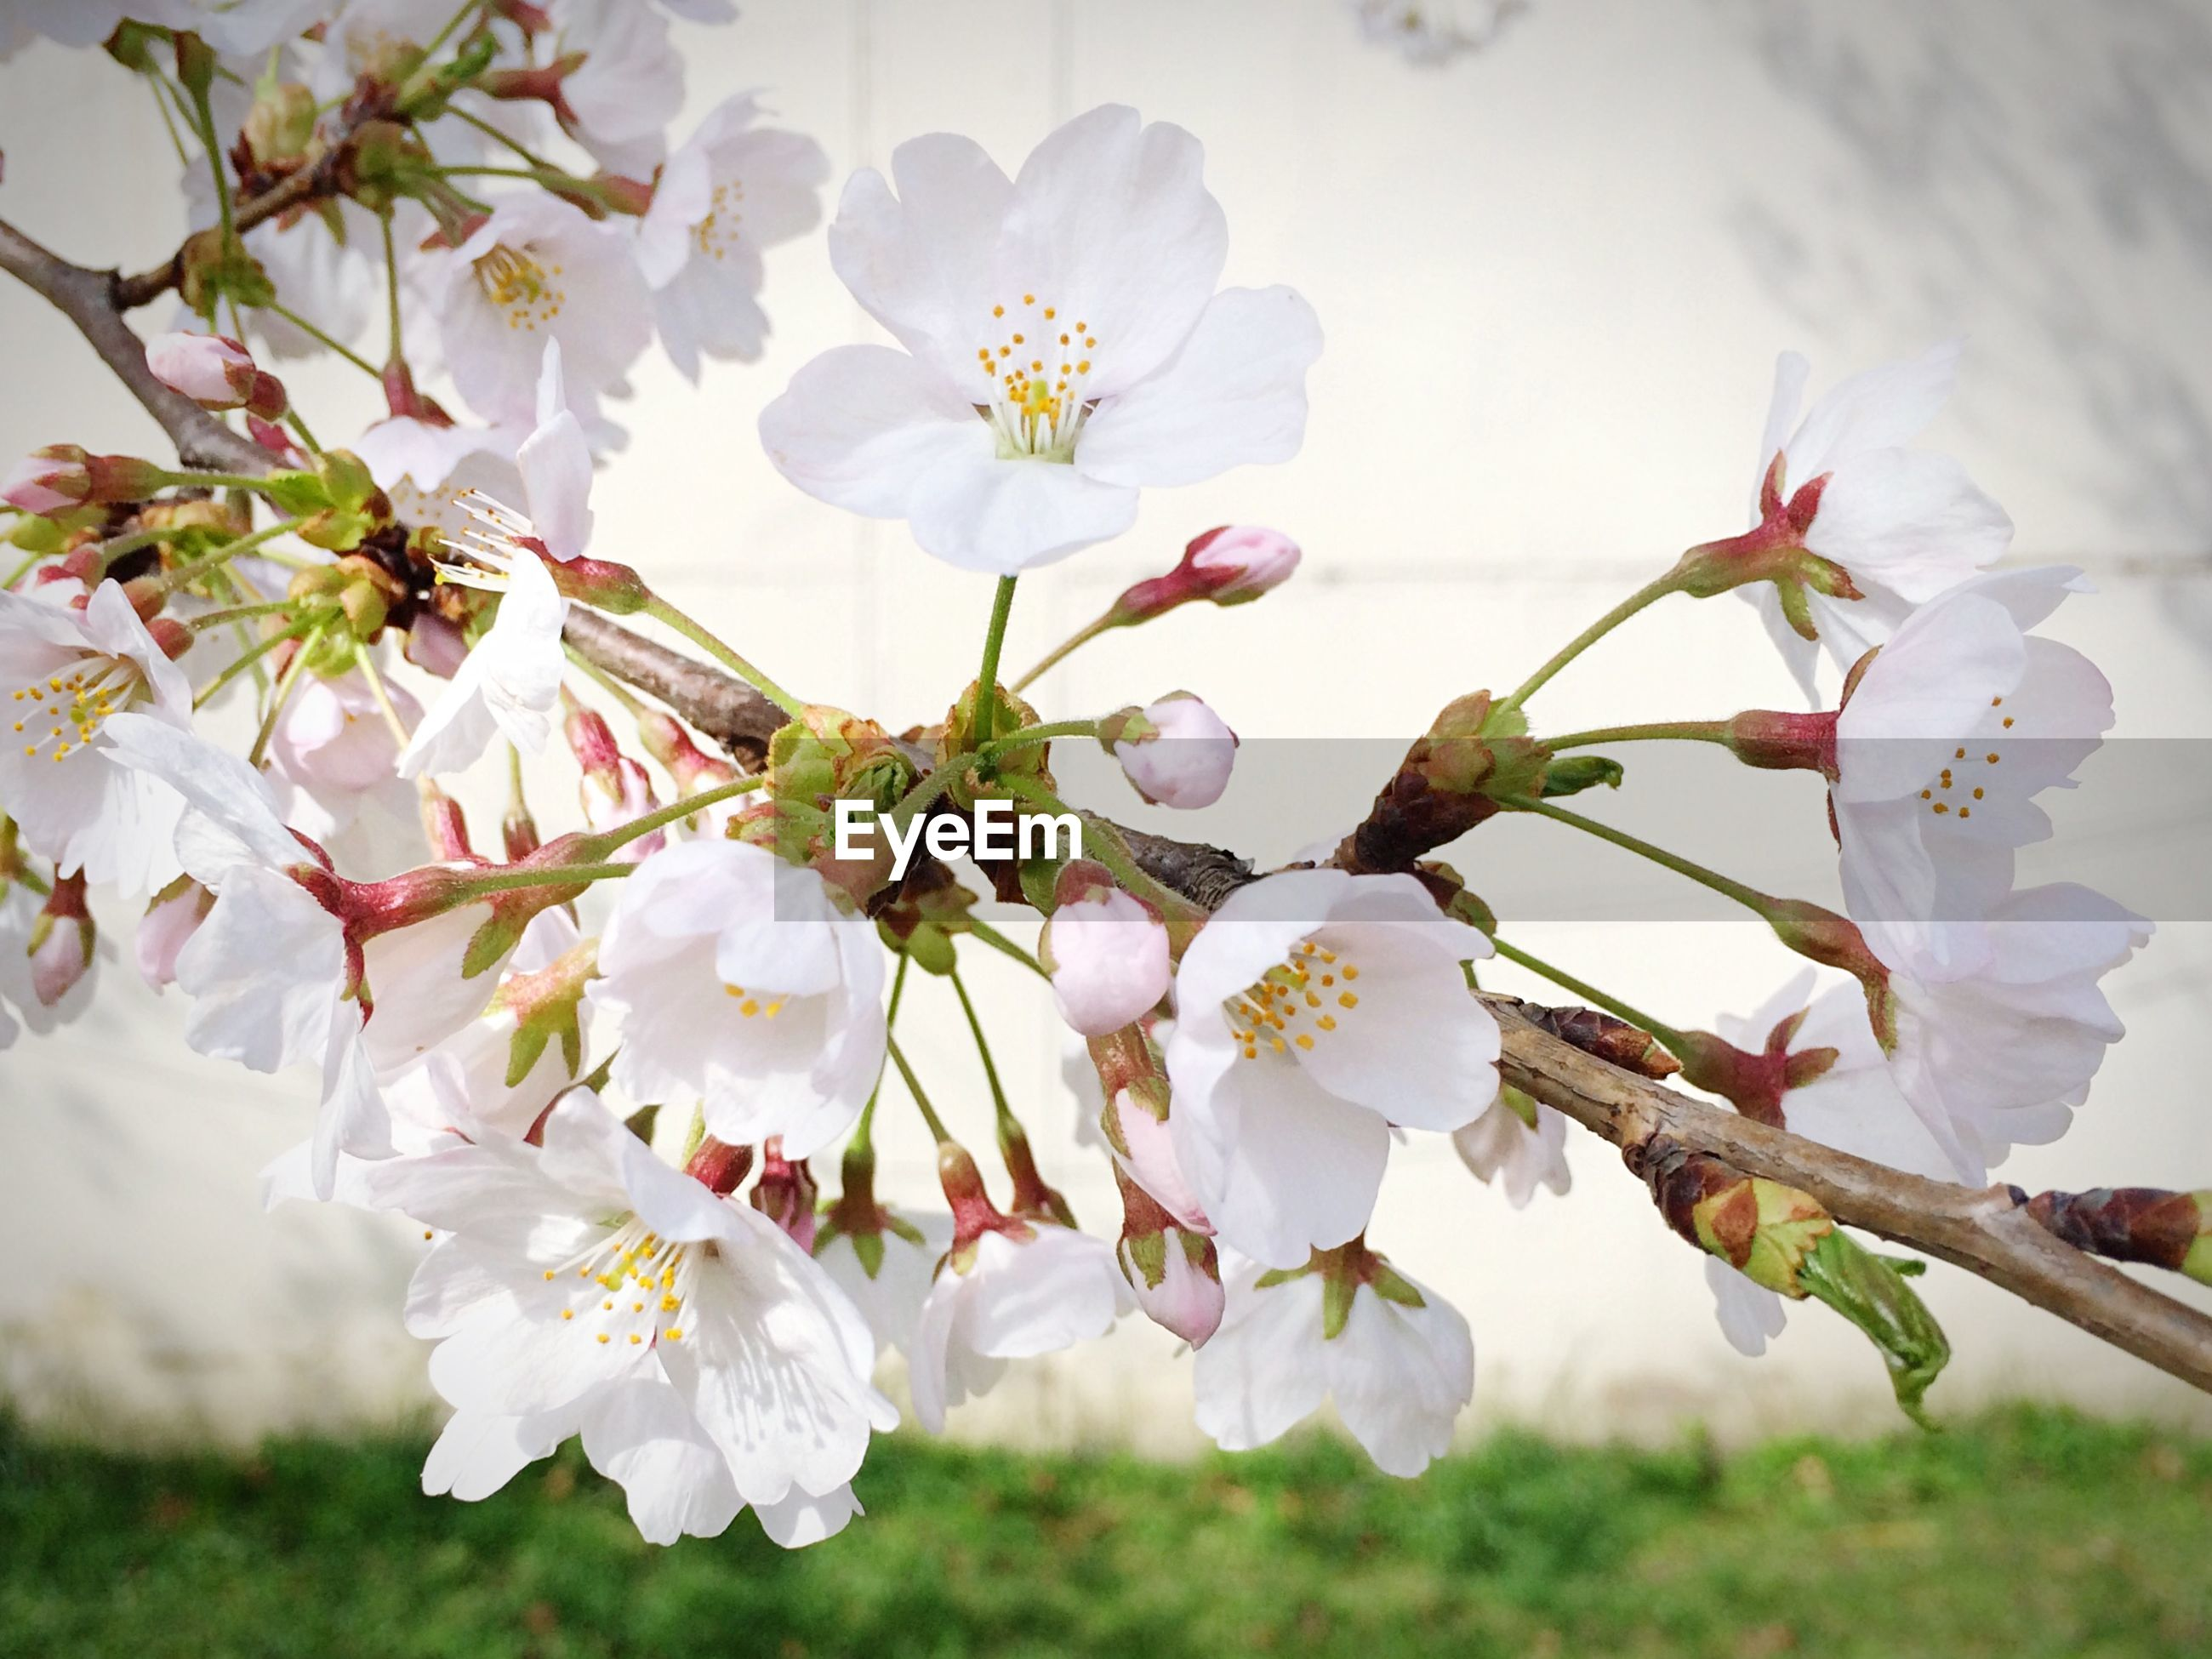 flower, freshness, fragility, white color, growth, petal, beauty in nature, cherry blossom, branch, blossom, tree, nature, cherry tree, flower head, apple tree, in bloom, apple blossom, focus on foreground, blooming, close-up